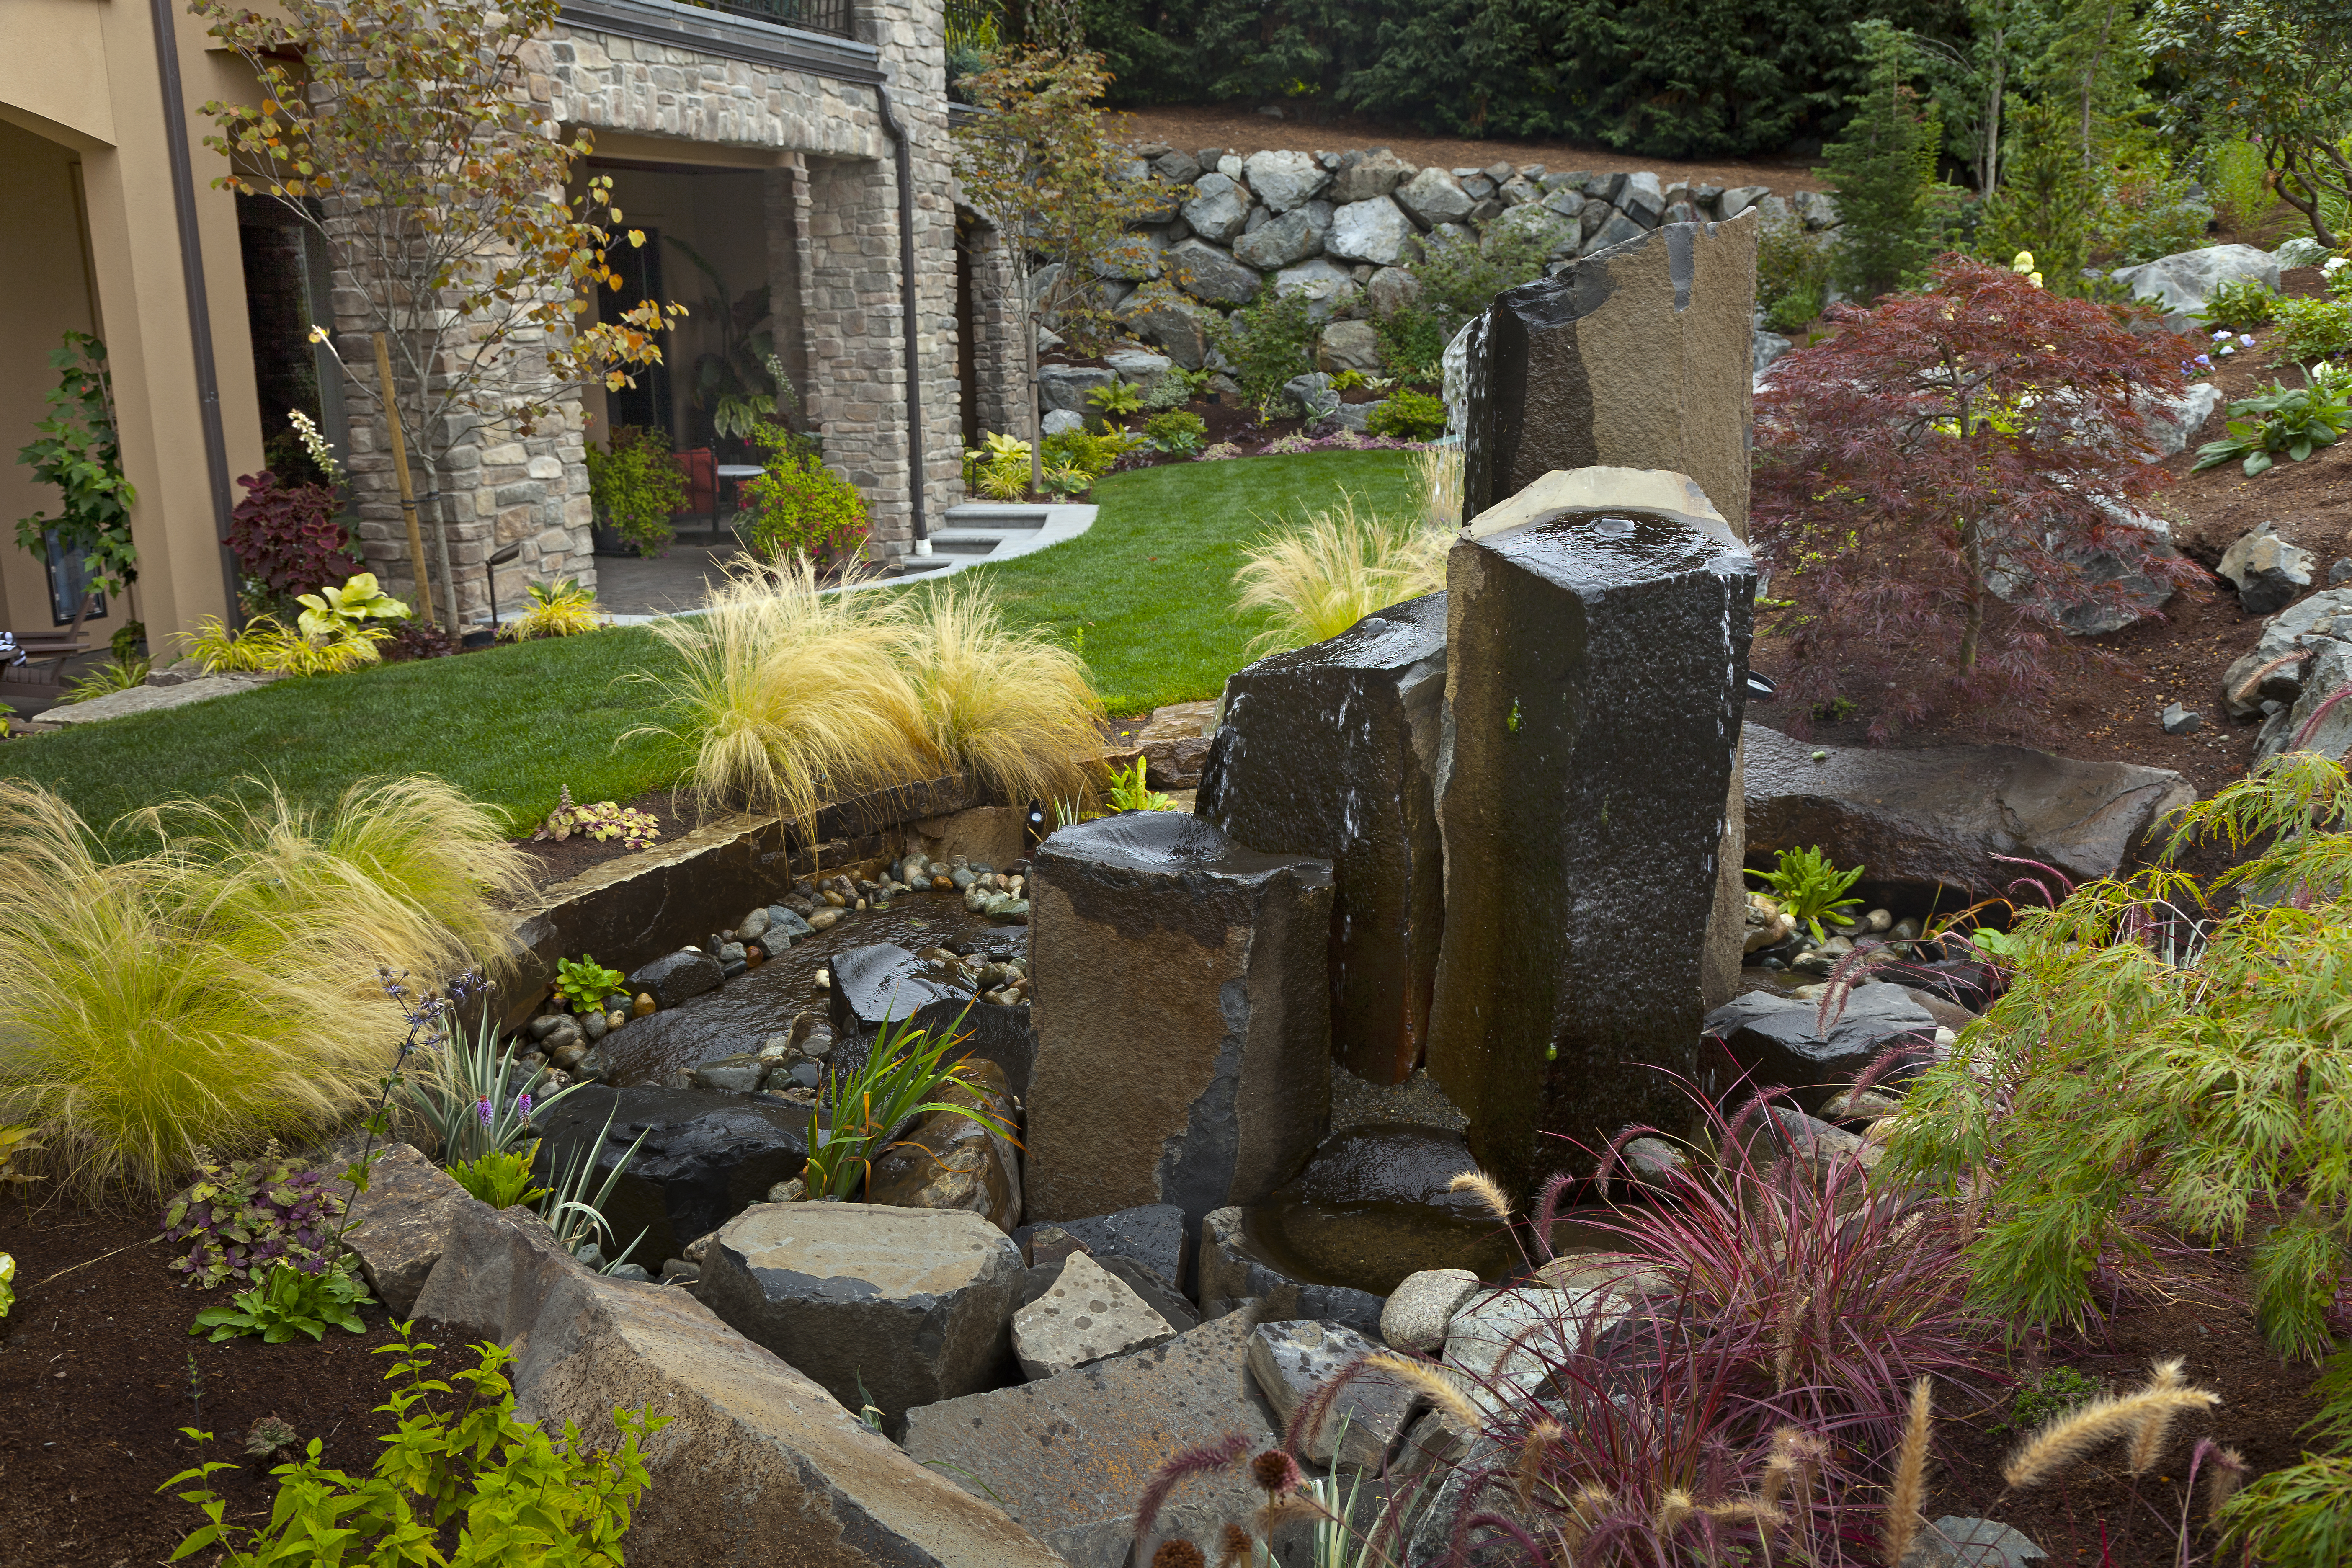 Fountain from a monolith designed by Environmental Construction Inc. in Kirkland WA